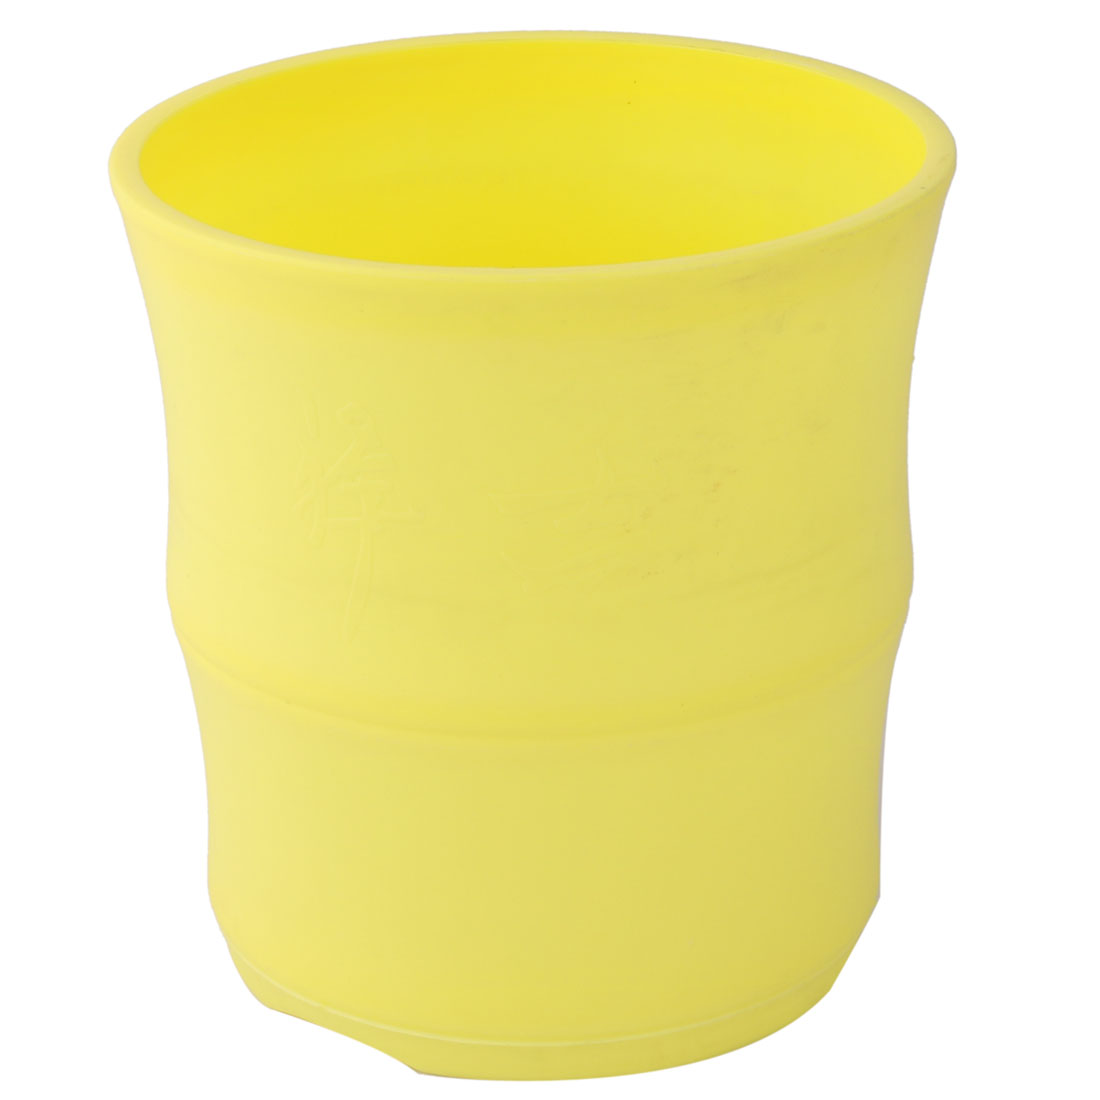 Garden Decor Plastic Round Style Flower Cactus Plant Pot Holder Container Yellow